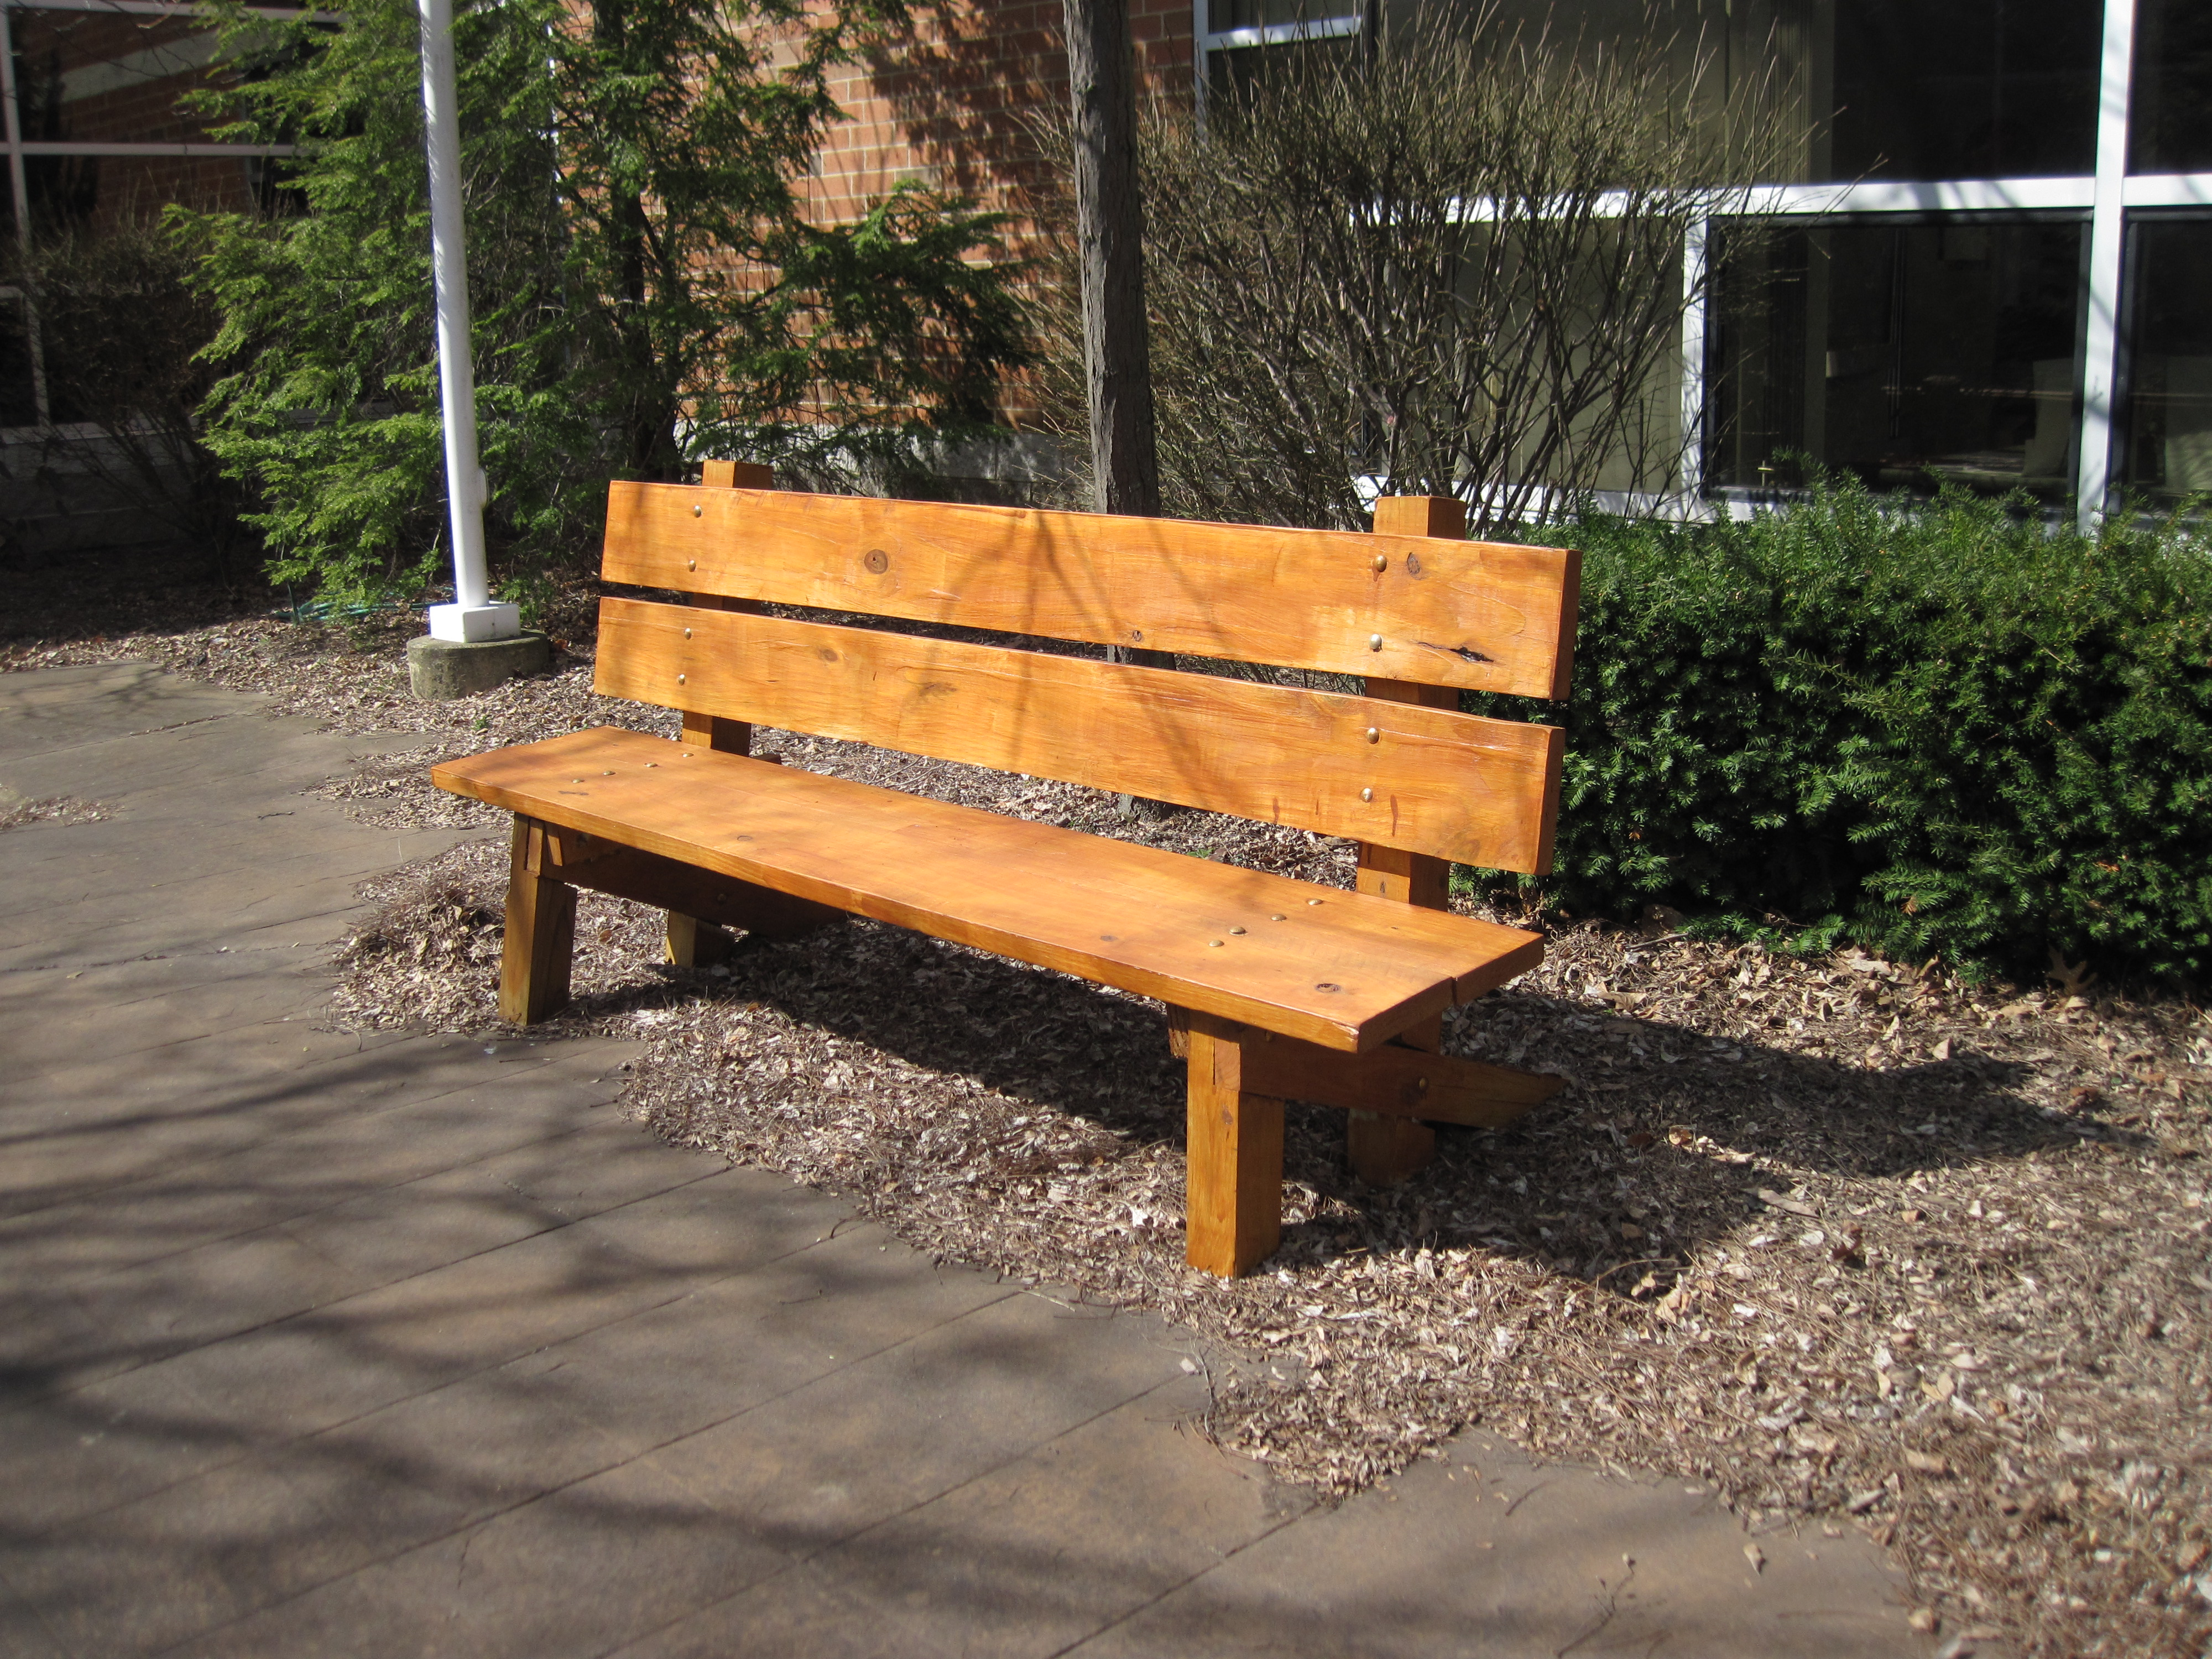 diy wood projects for midddle school